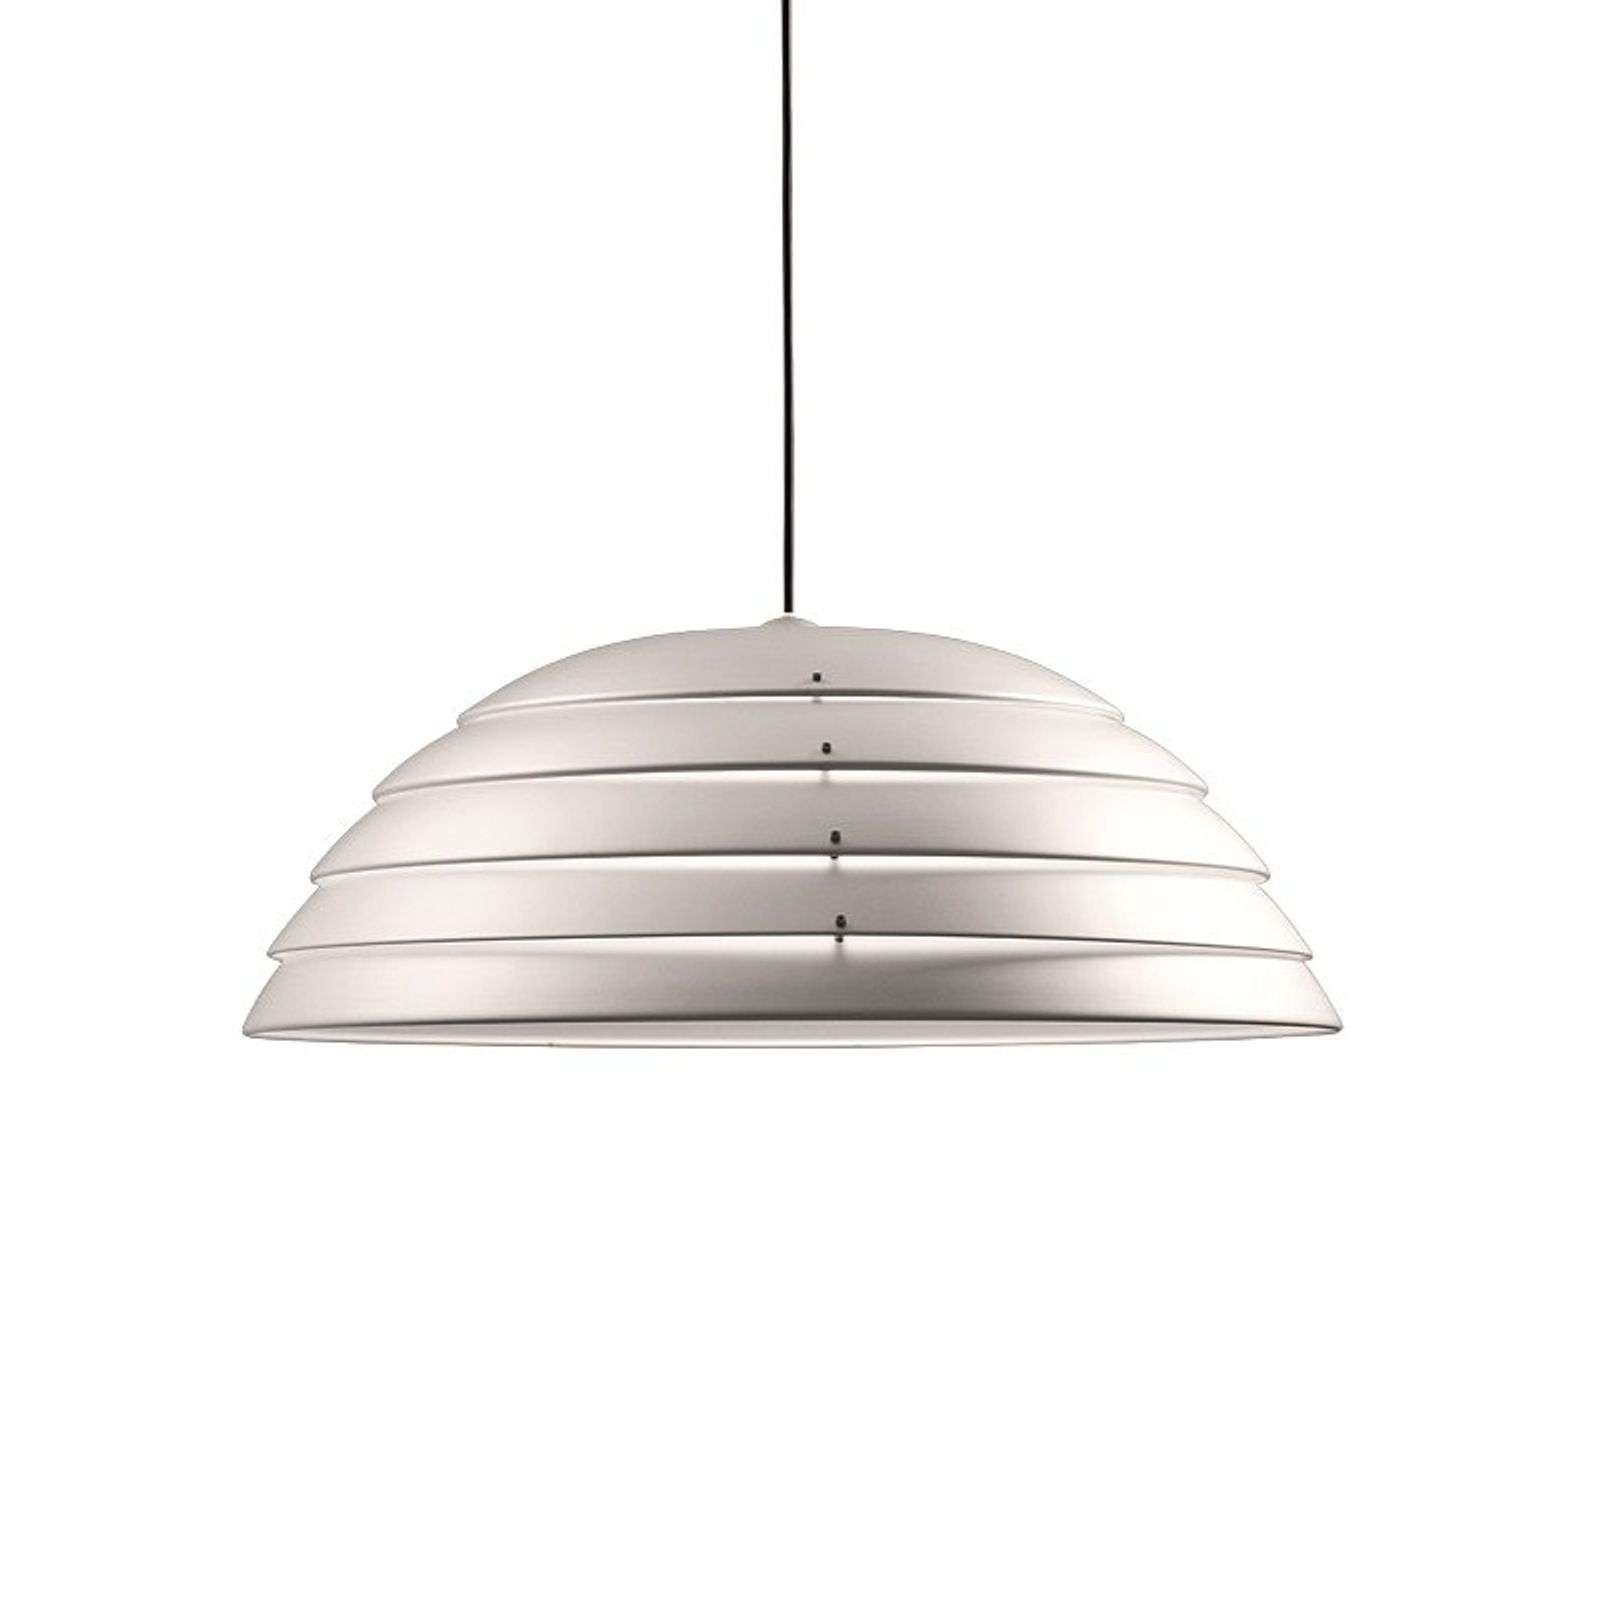 Suspension intemporelle CUPOLONE